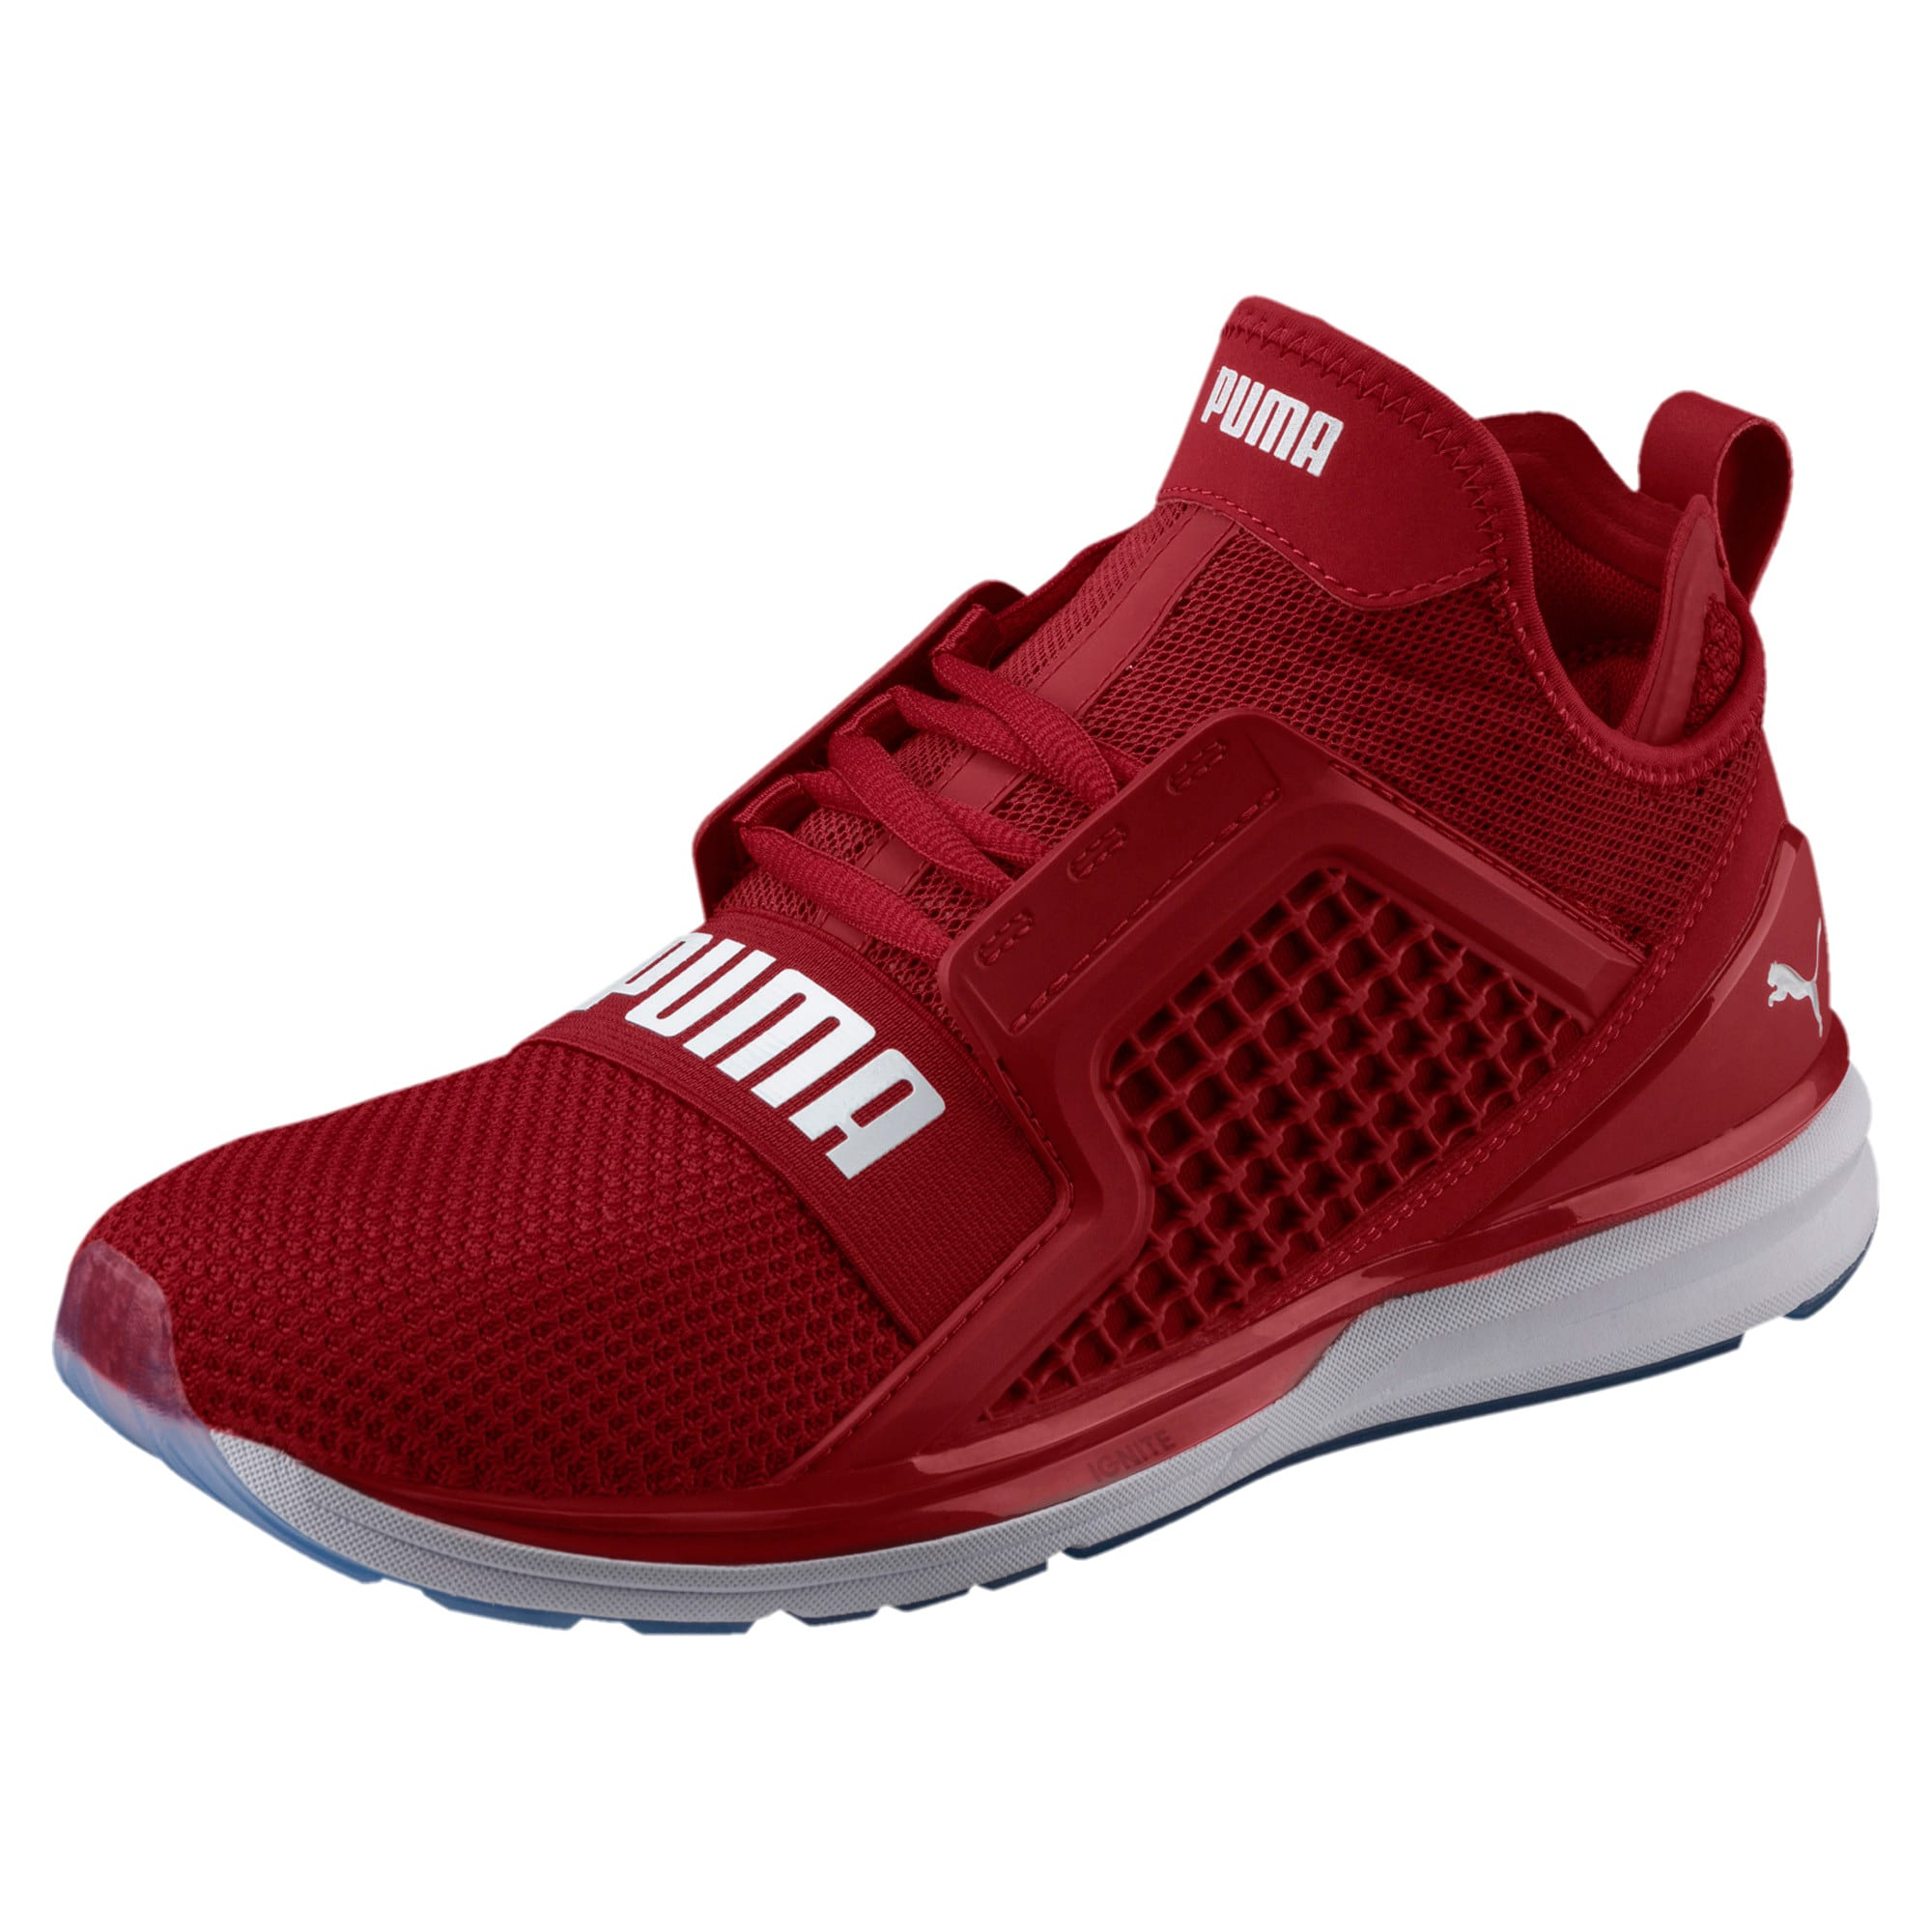 best loved 41a6b 98ebd IGNITE Limitless Weave Men's Running Shoes